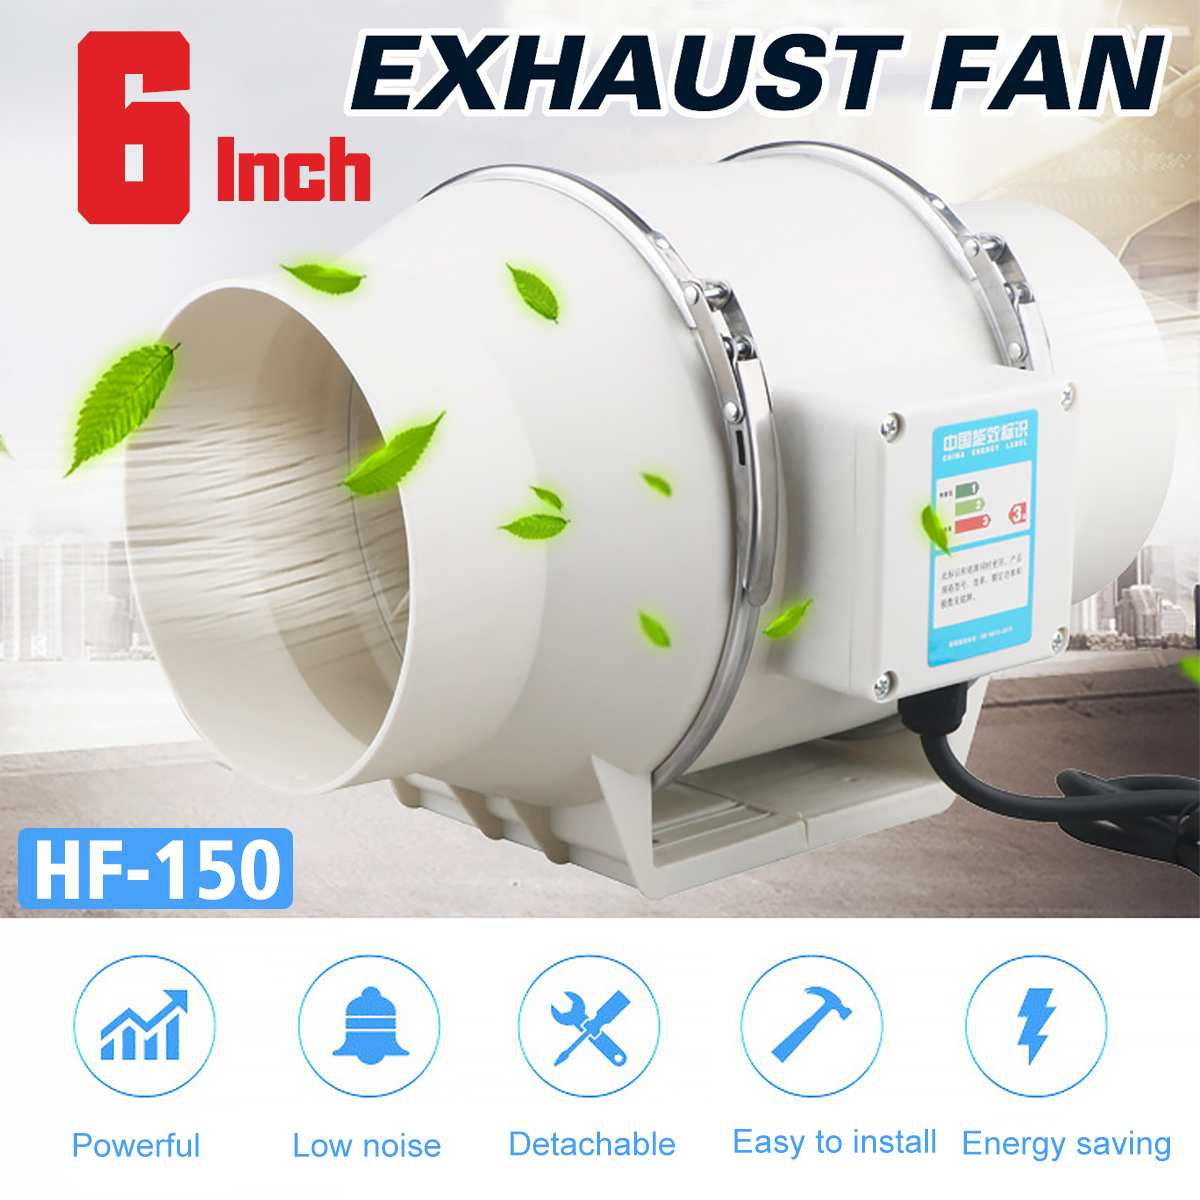 New 220V 6 Inch Low Noise Inline Duct Hydroponic Air Blower Fan  Exhaust Fan For Home Bathroom Ventilation Vent And Grow Room